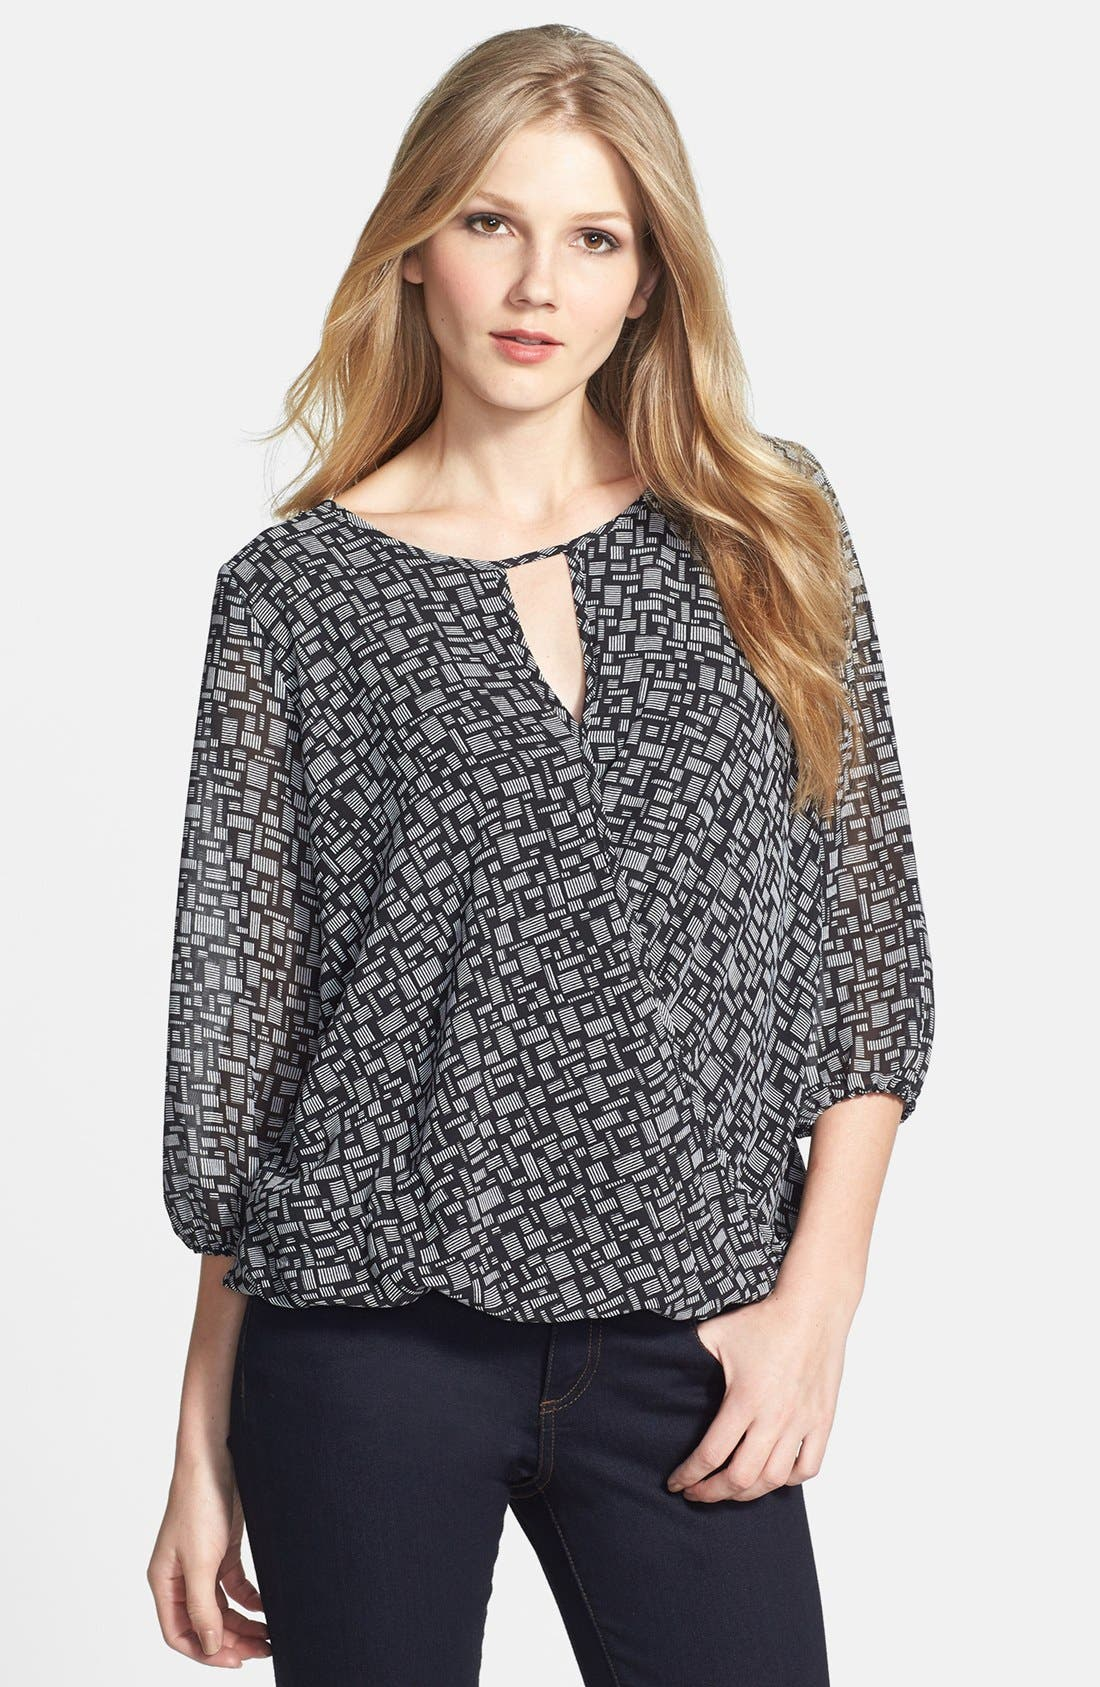 Main Image - Vince Camuto 'Blurred Touches' Faux Wrap Blouse